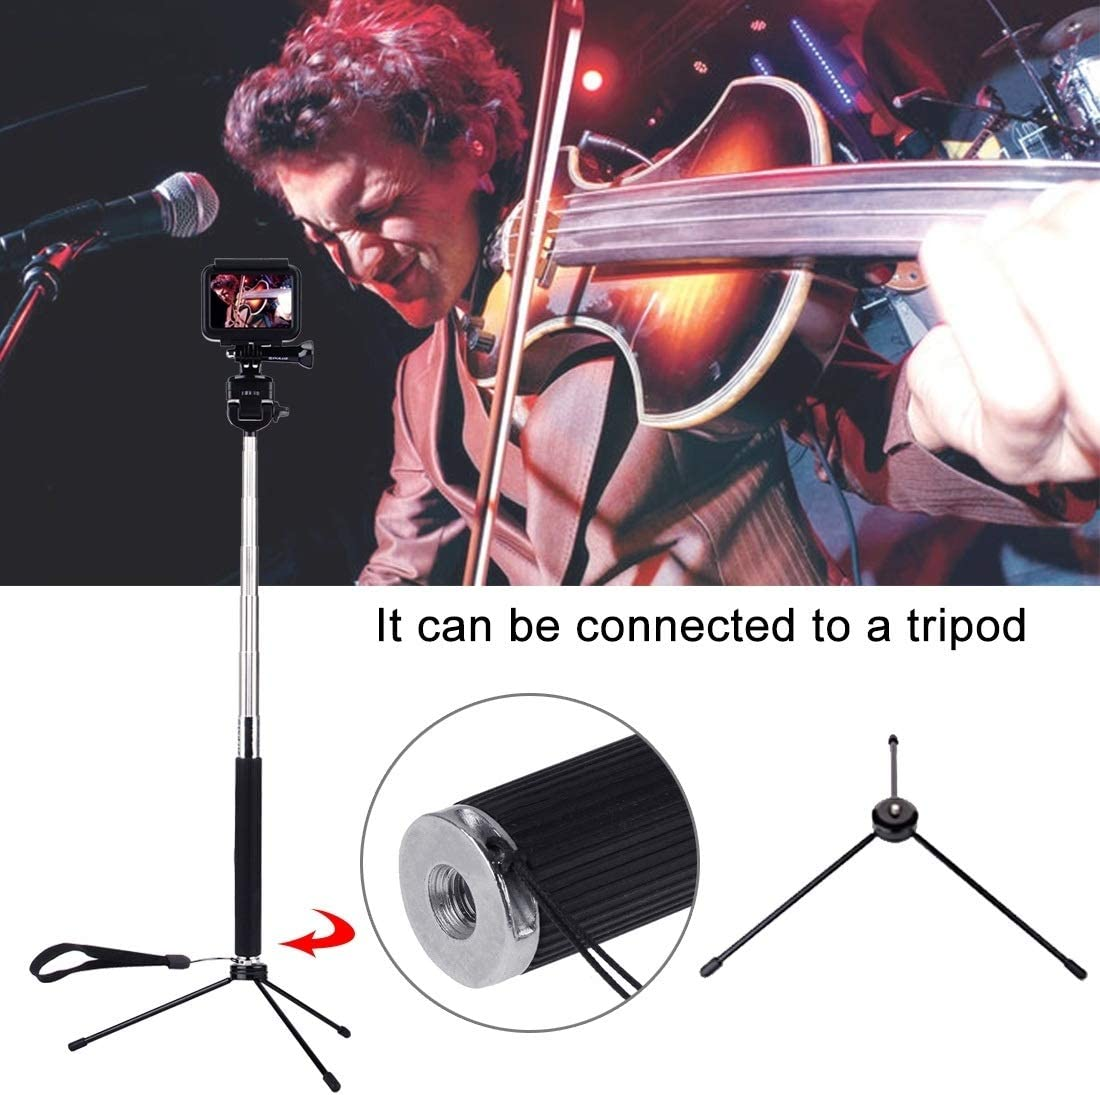 Length: 22.5-100cm Reliable Xiaoyi and Other Action Cameras Chaomin Extendable Handheld Selfie Monopod for GoPro New Hero//HERO7 //6//5 //5 Session //4 Session //4//3+ //3//2 //1 DJI New Action